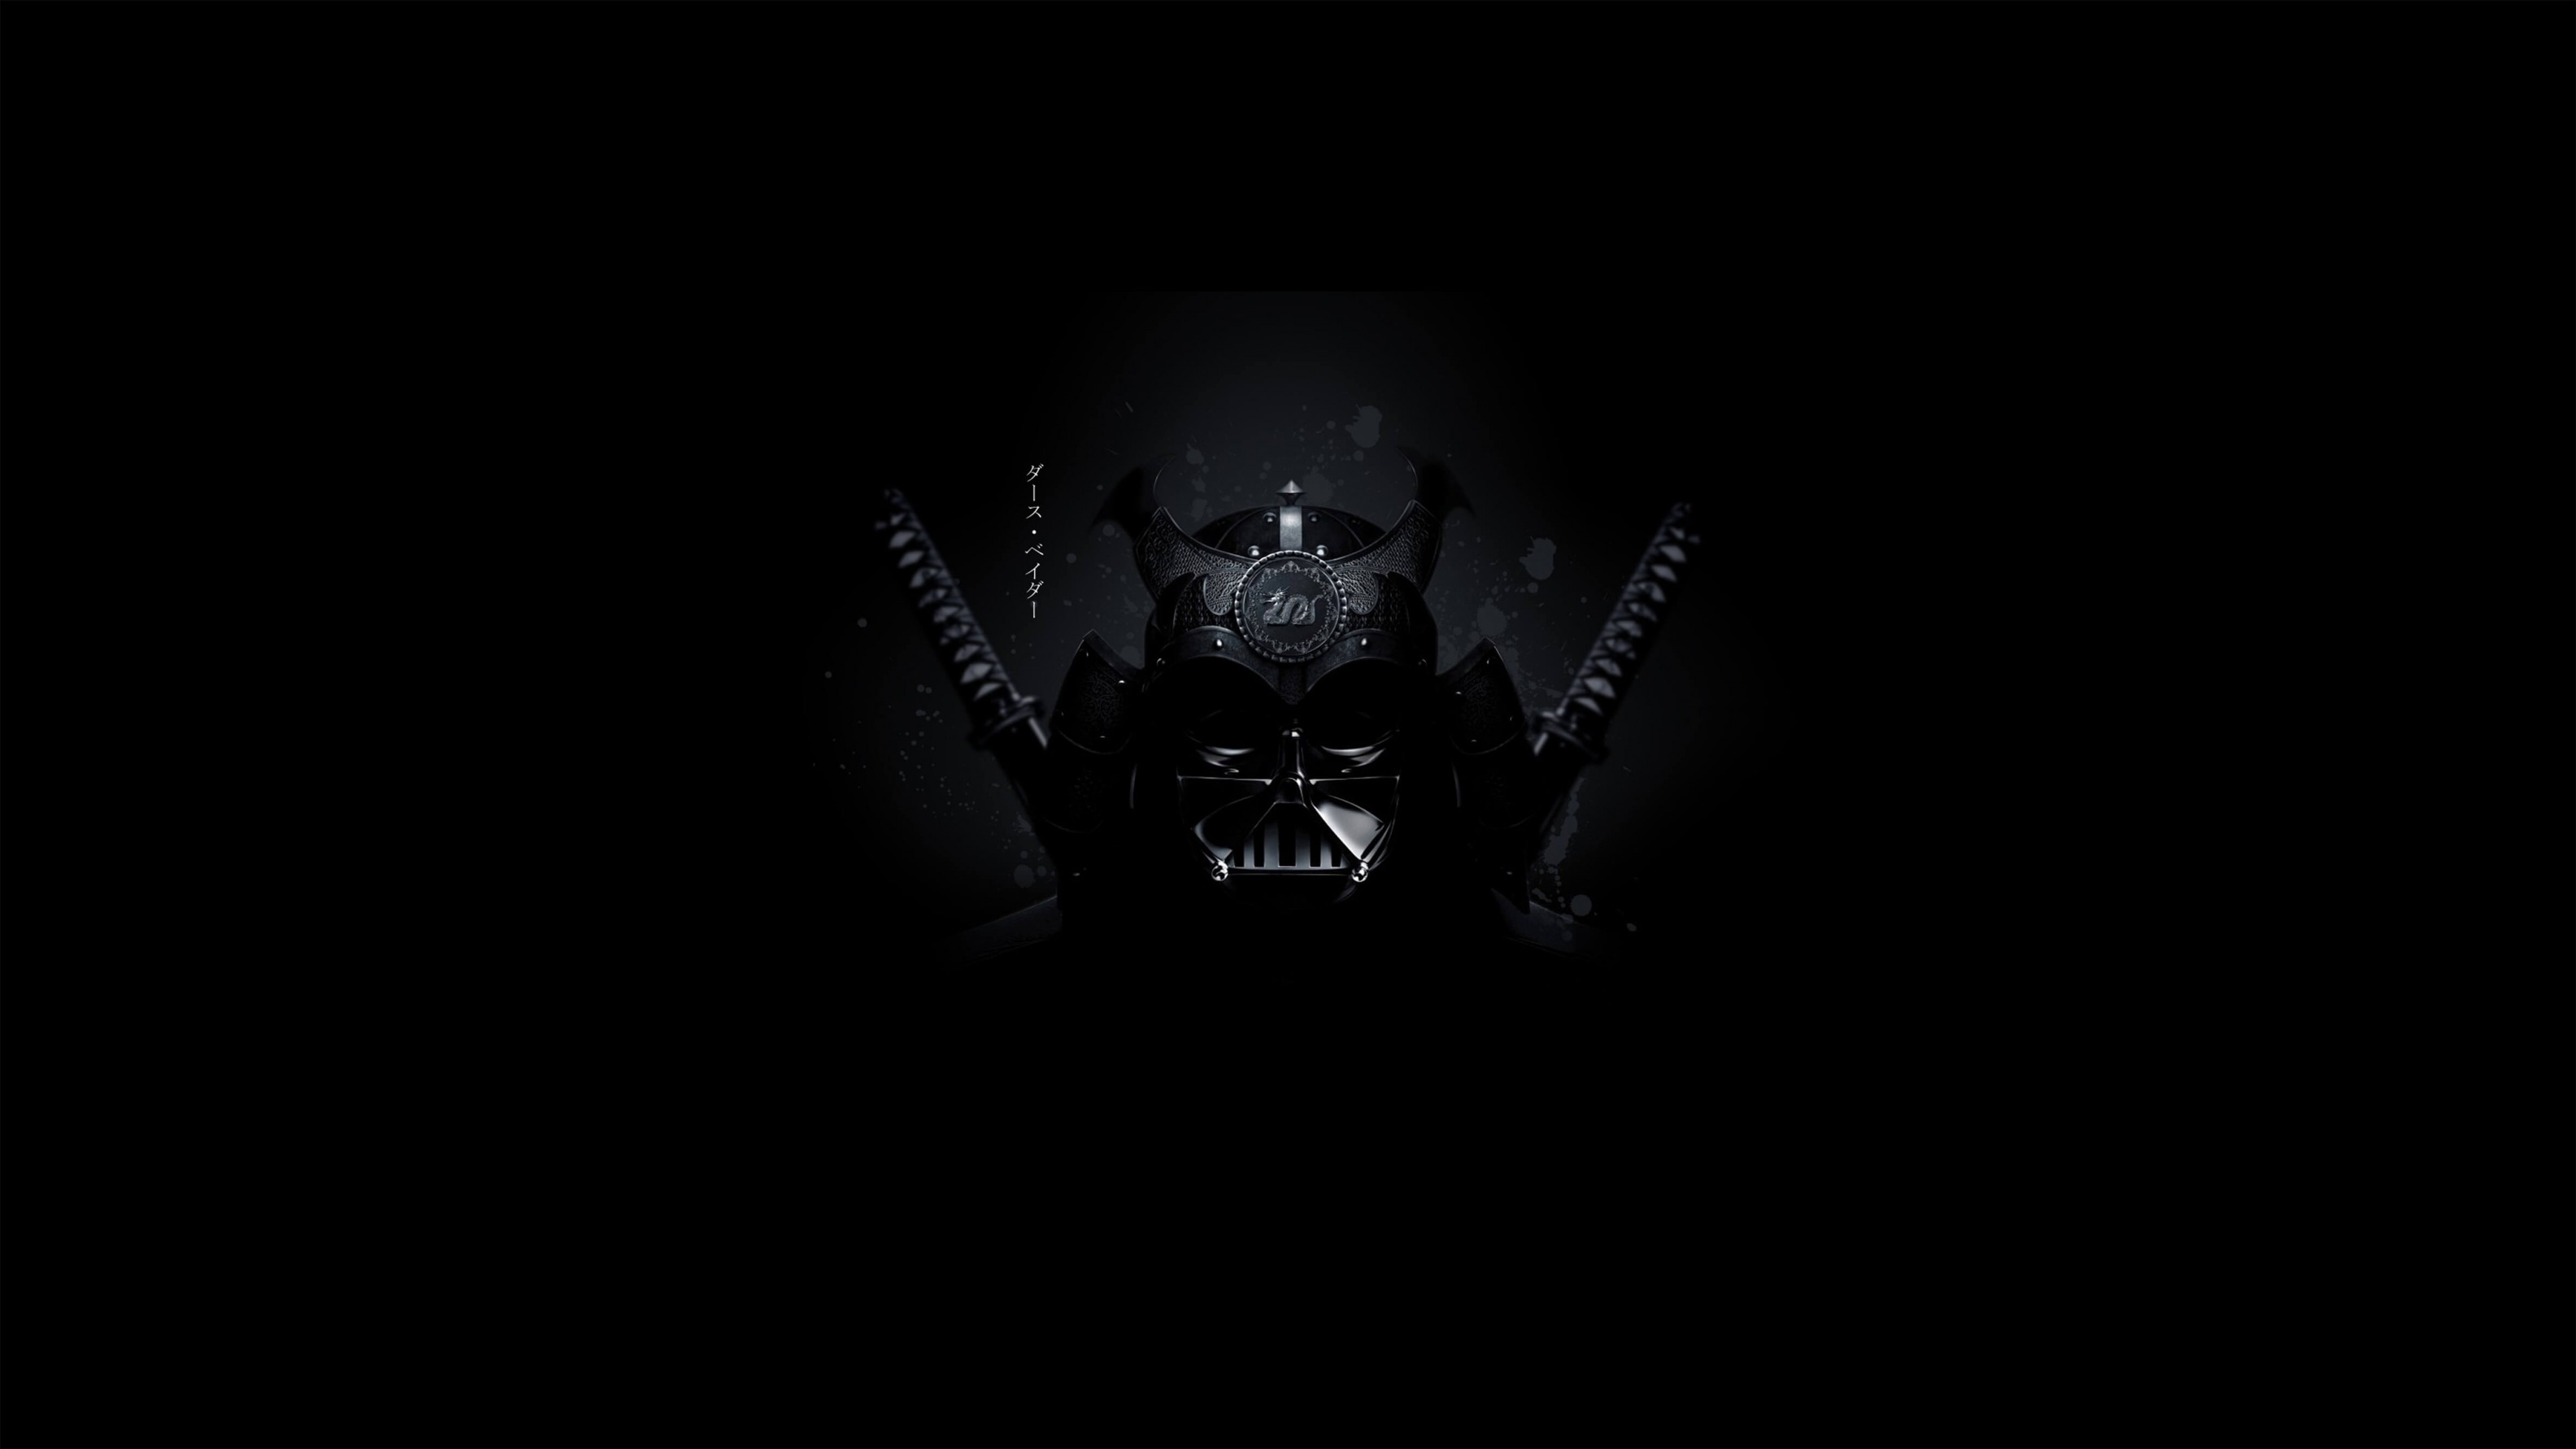 Samurai Darth Vader 4k Wallpaper